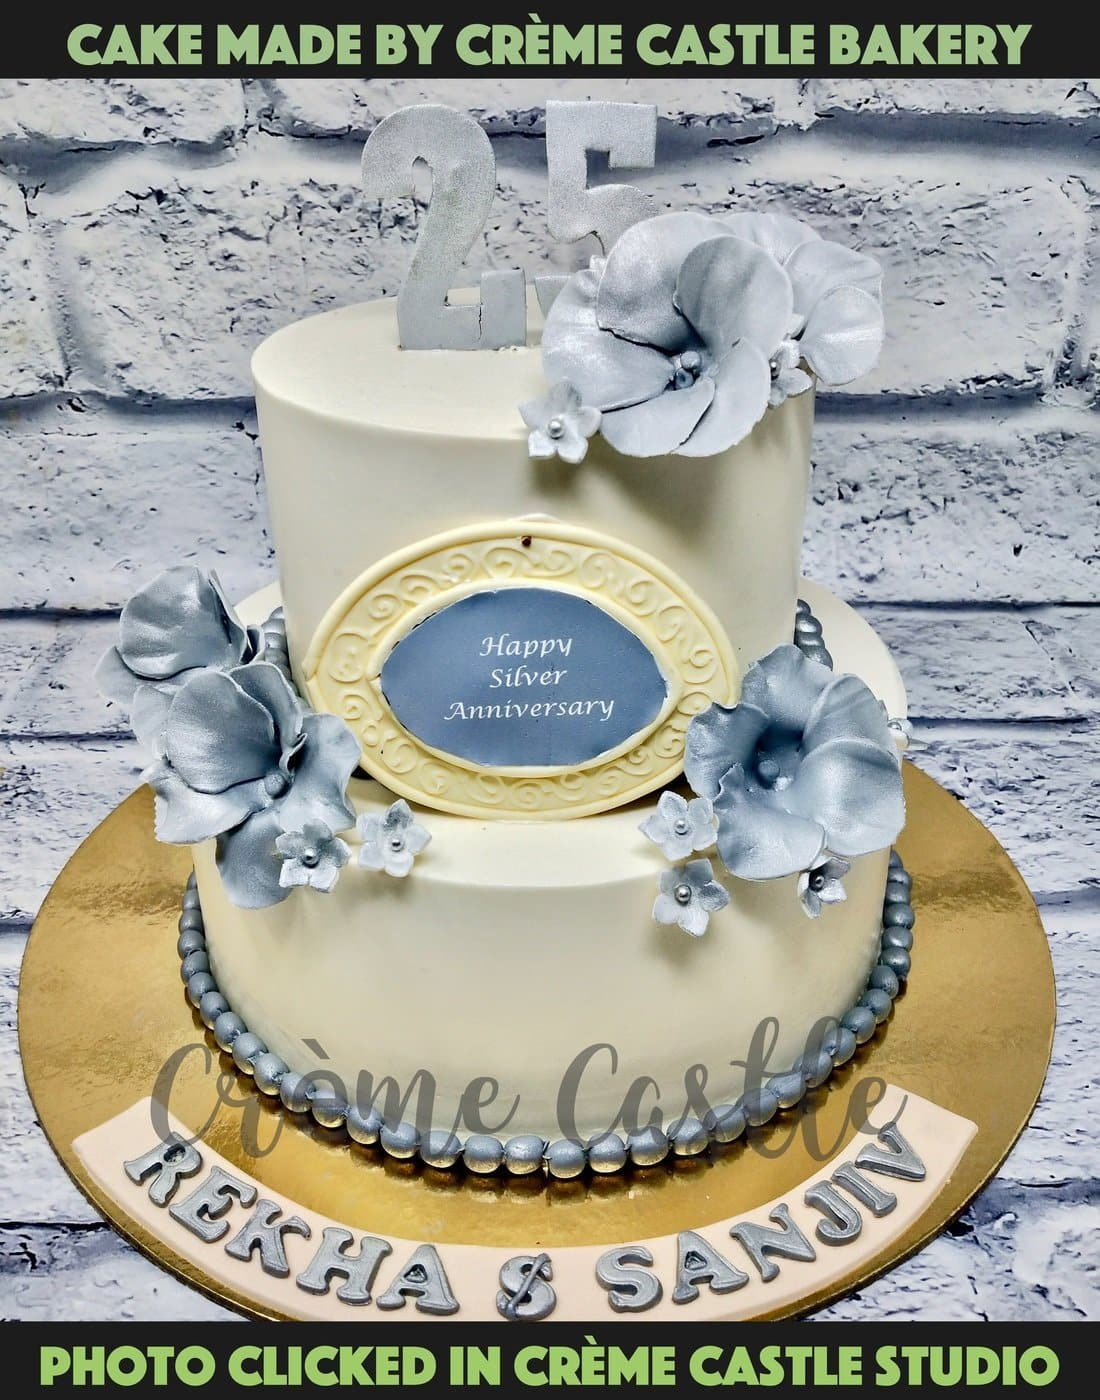 A cake for 25th Silver Anniversary in white and silver theme